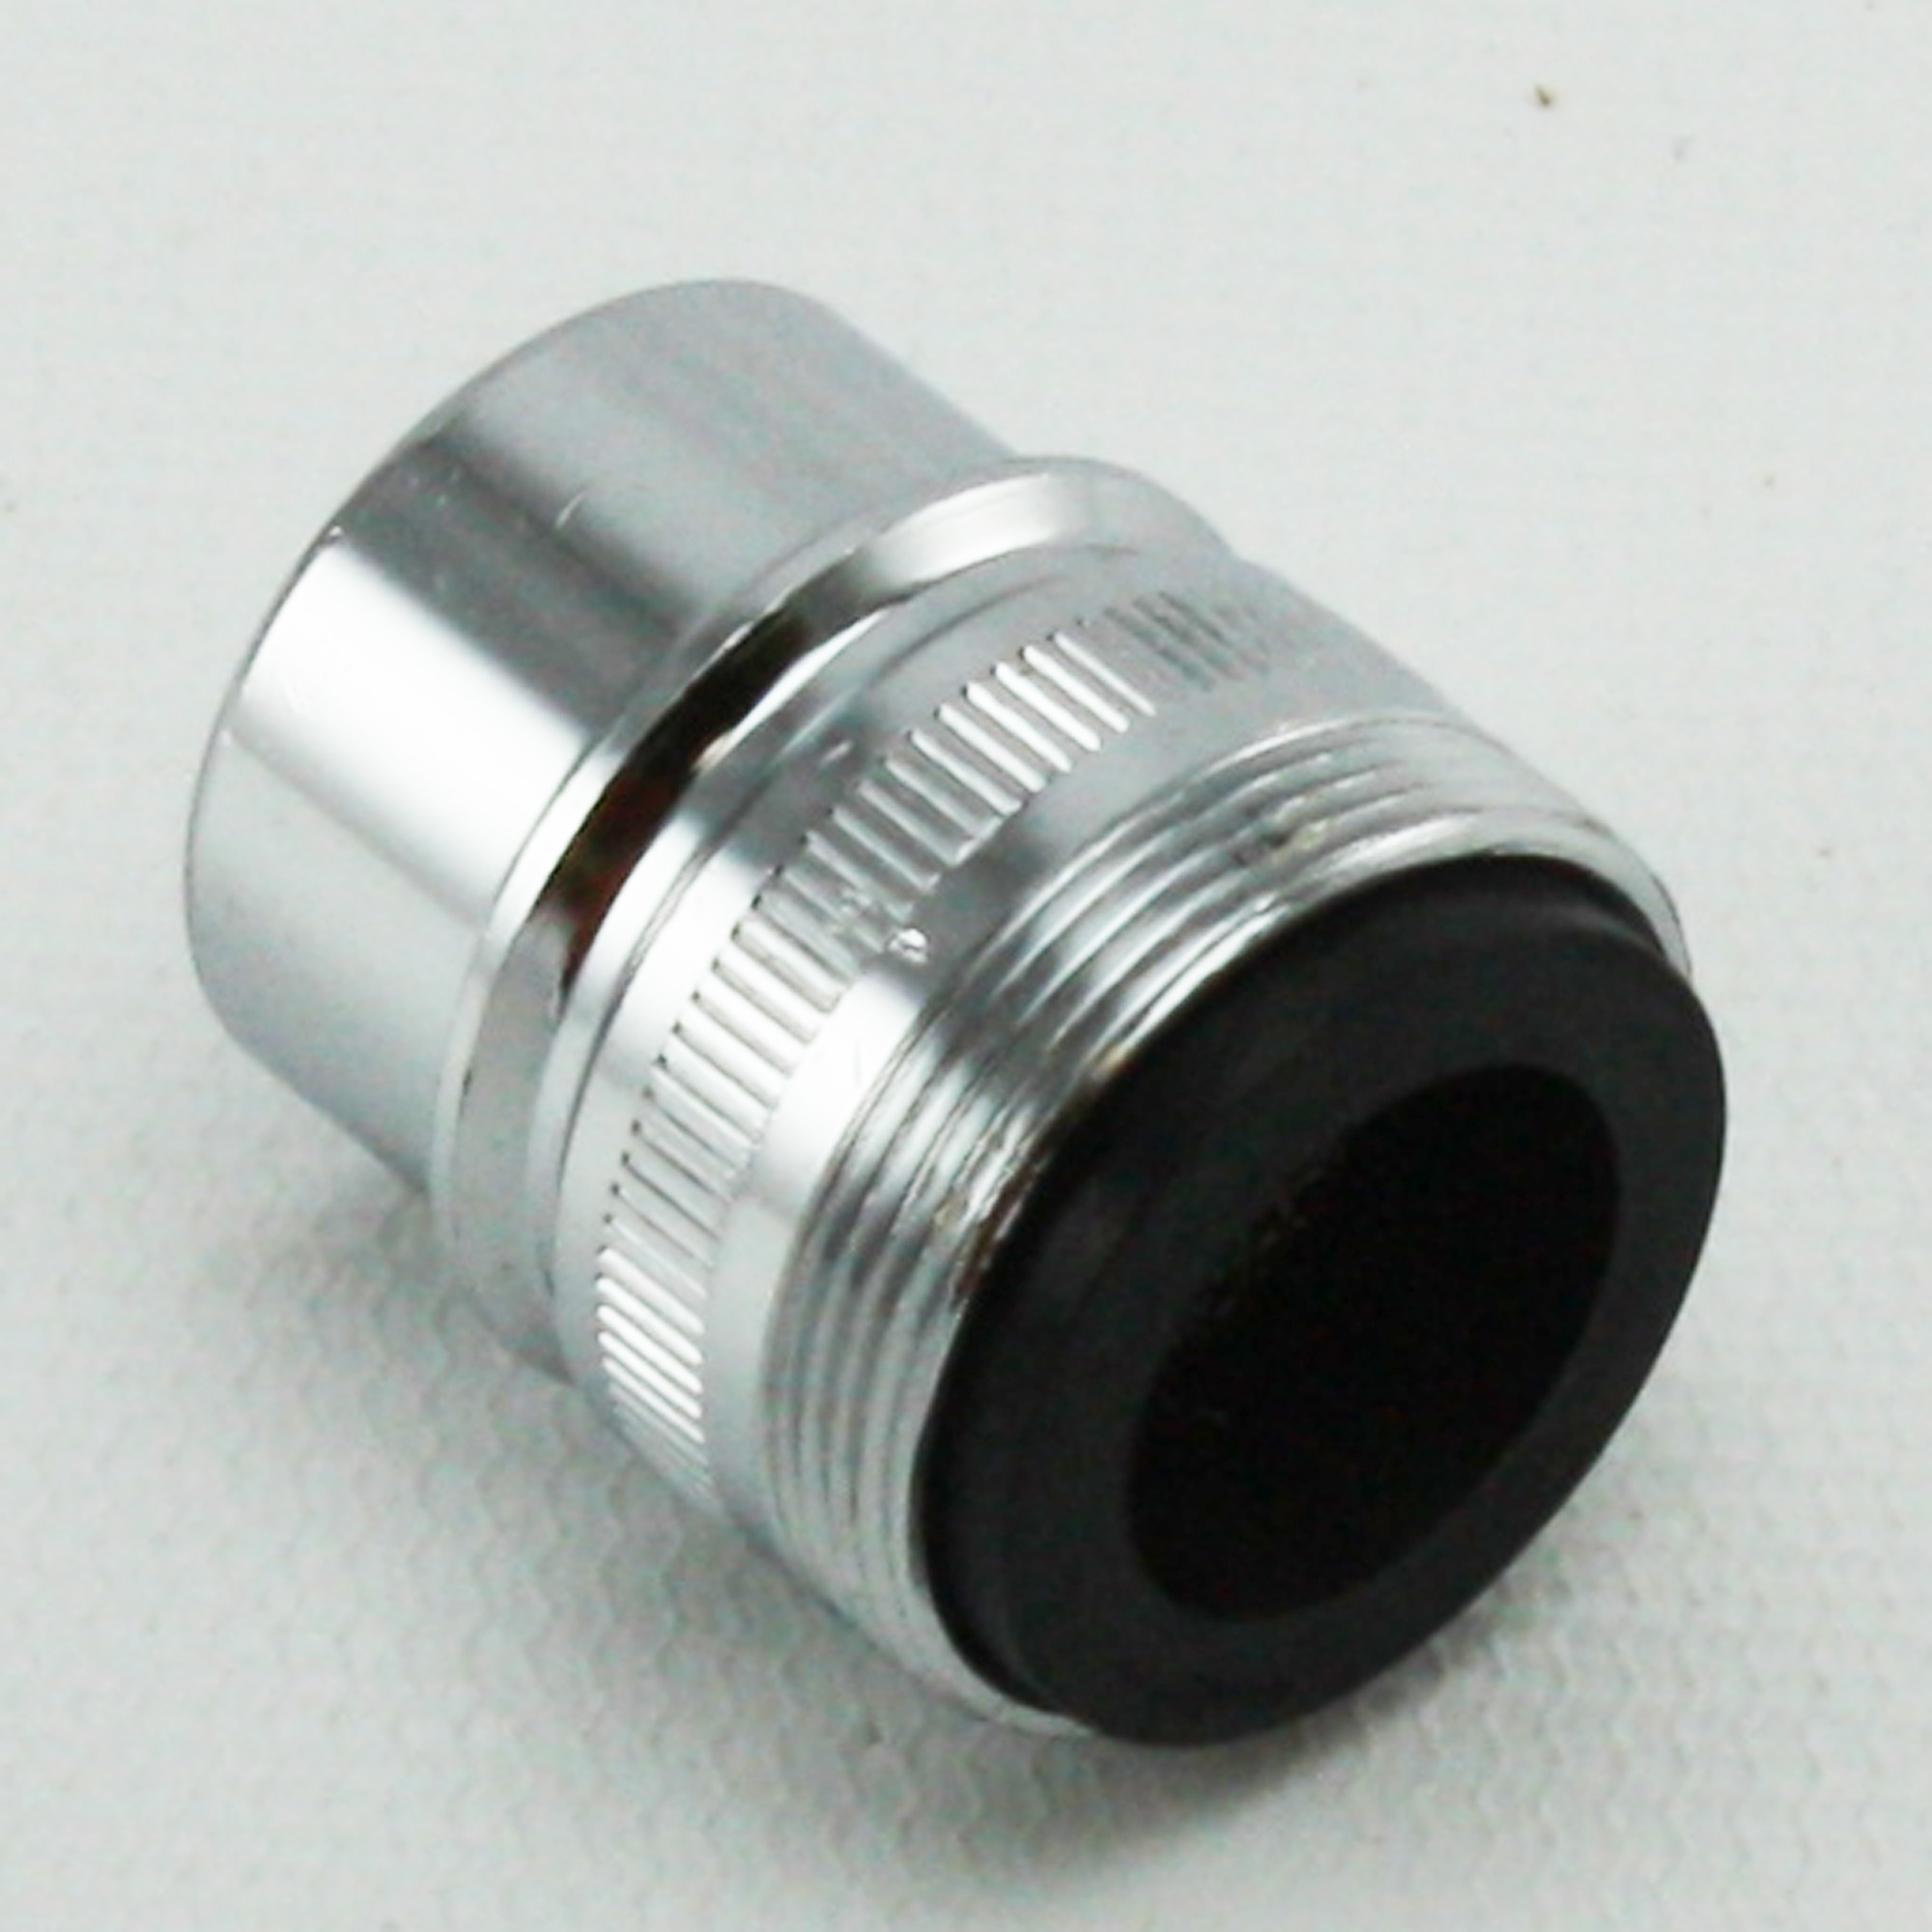 WD1X1447 For GE Portable Dishwasher Faucet Adapter Coupling ...